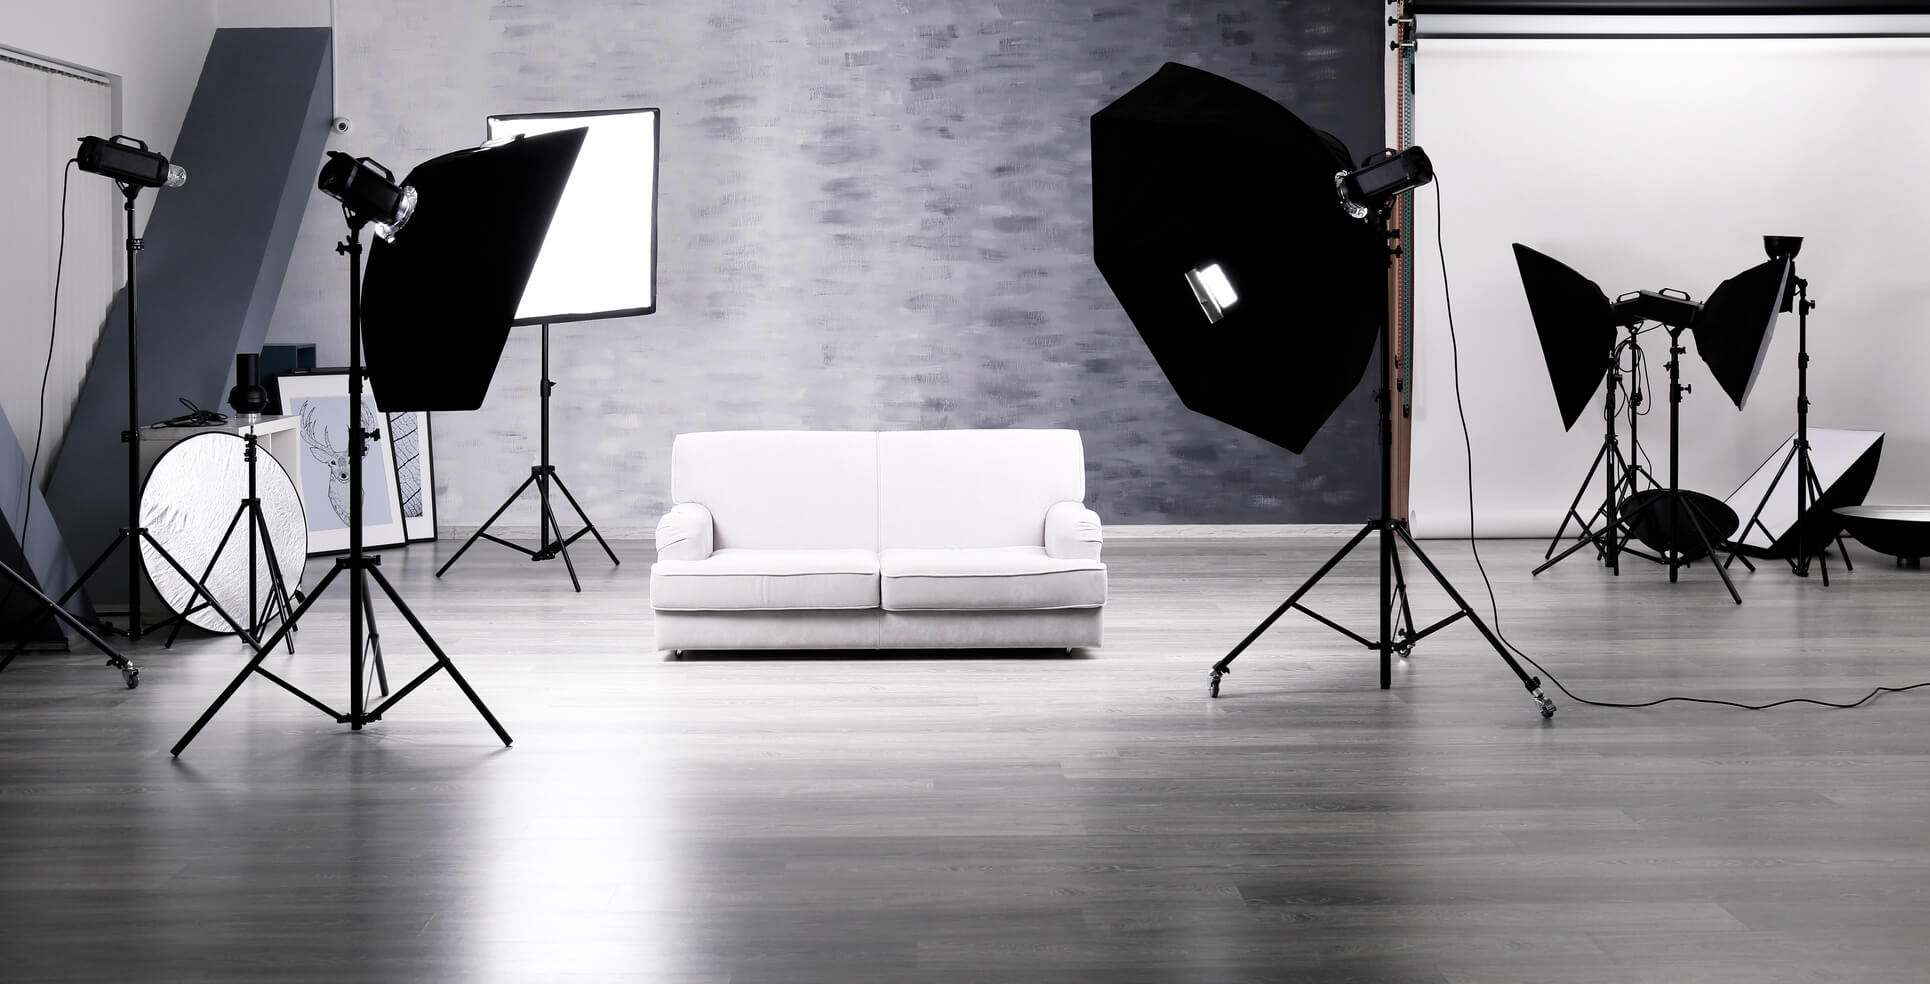 Studio Light © fotolia / Africa Studio